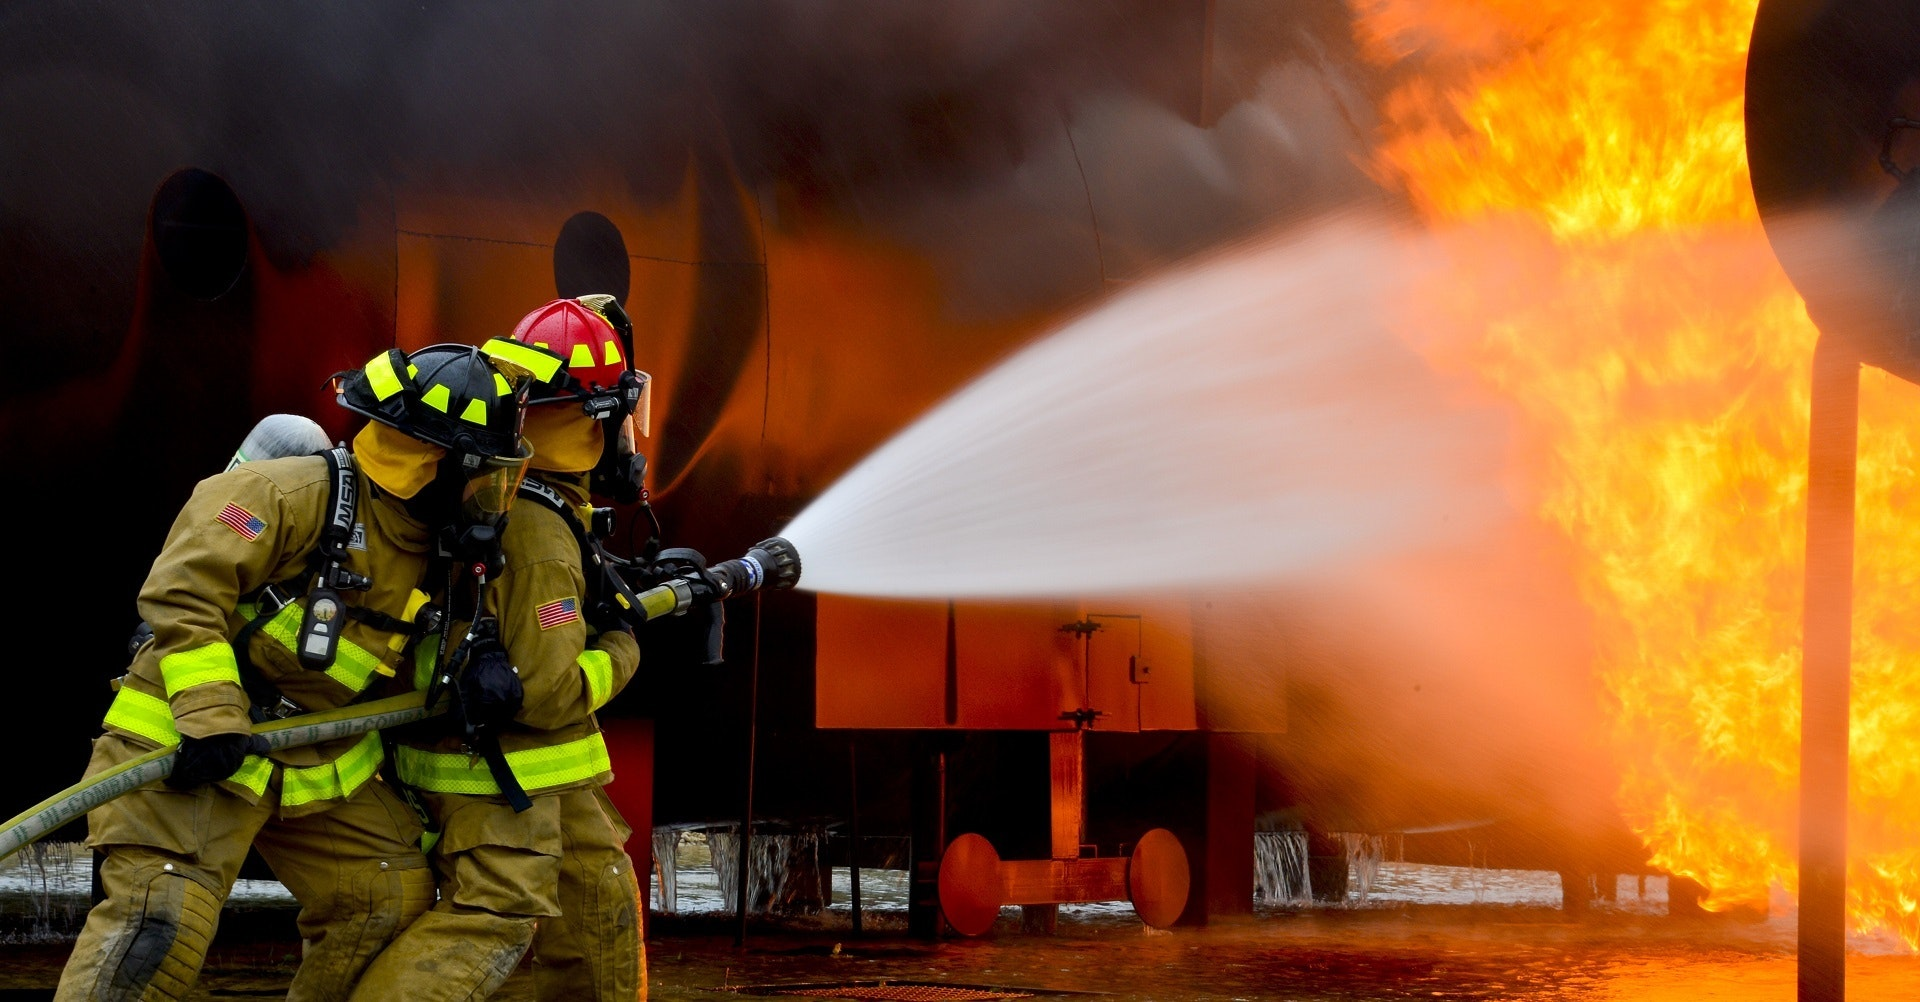 SEEC fines state firefighter union over missing PAC money